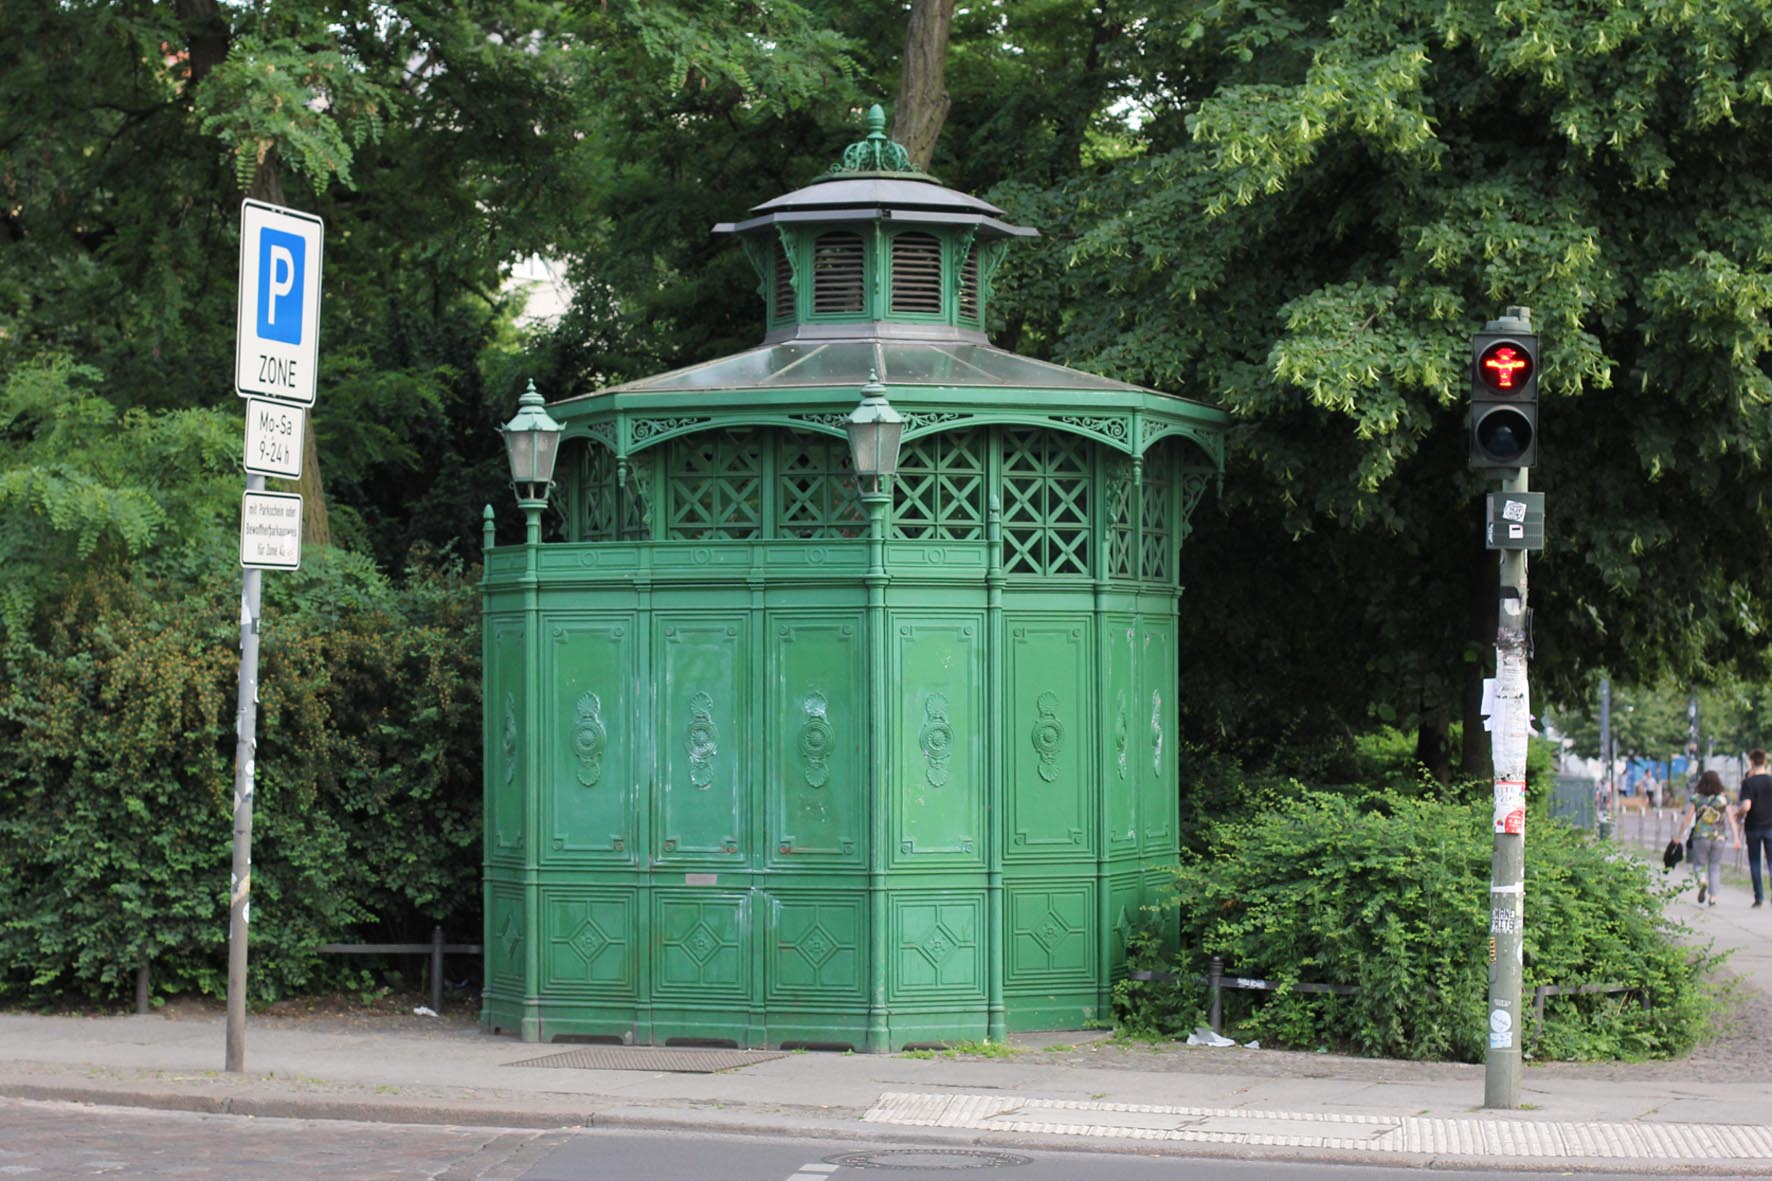 Café Achteck - Senefelderplatz - an example of Berlin's classic 19th century green cast iron public toilets